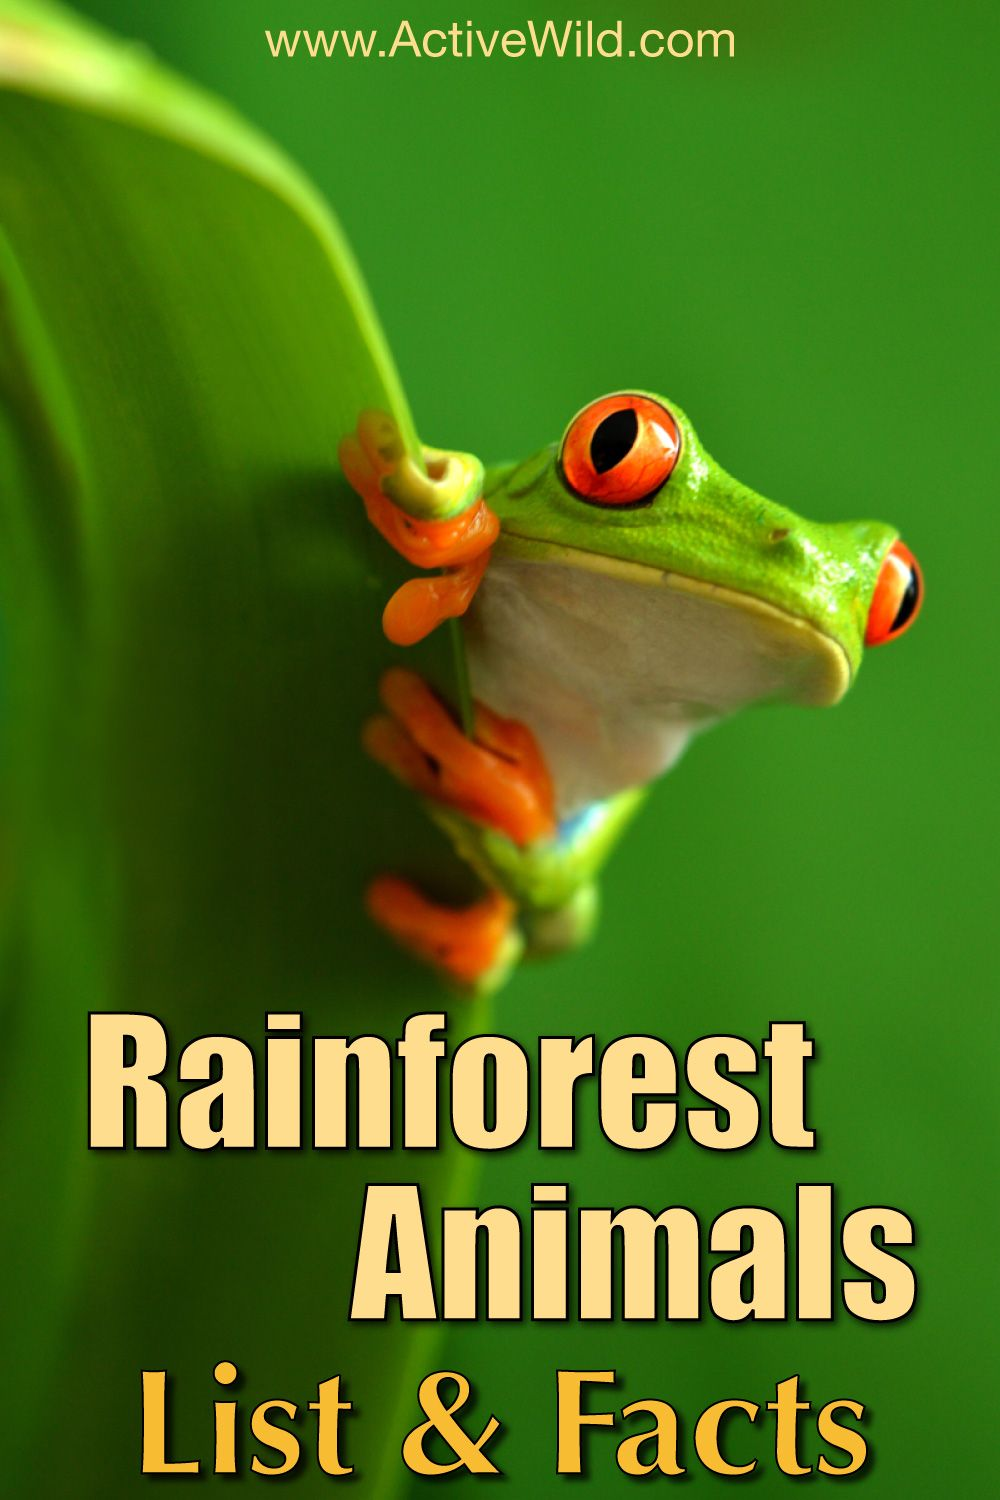 rainforest animals list with pictures, facts & information | a kids